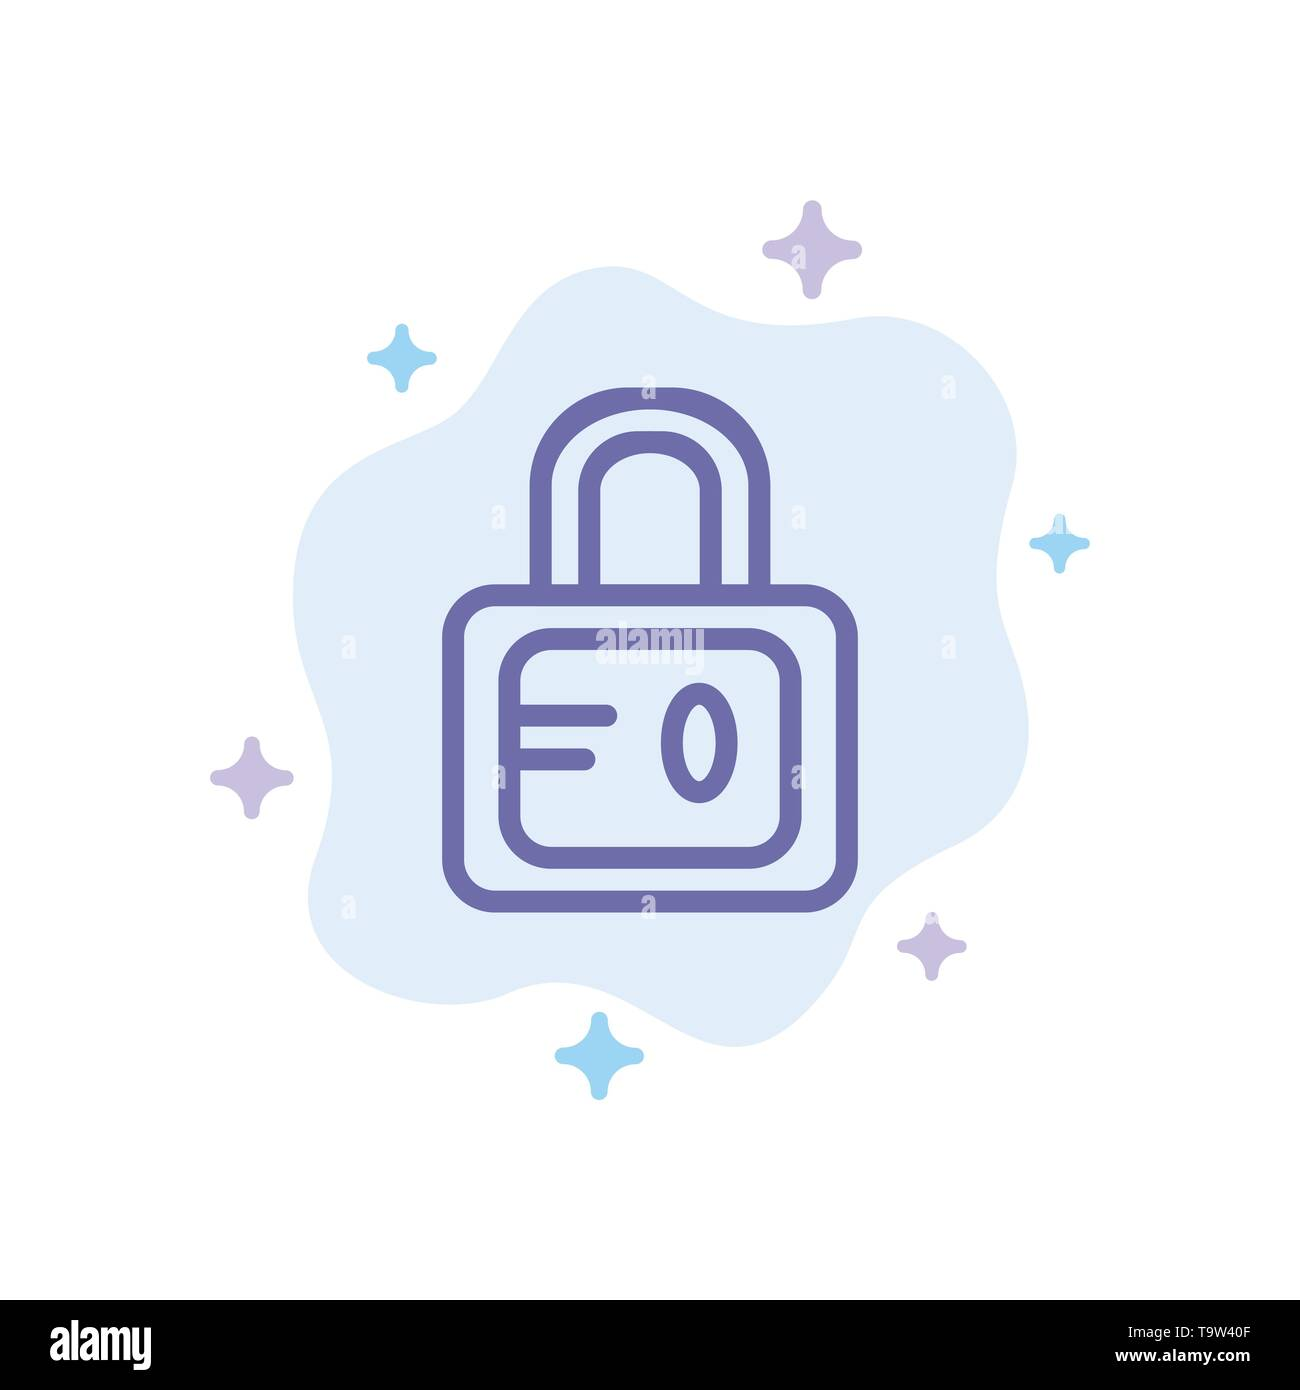 Lock, School, Study Blue Icon on Abstract Cloud Background - Stock Image